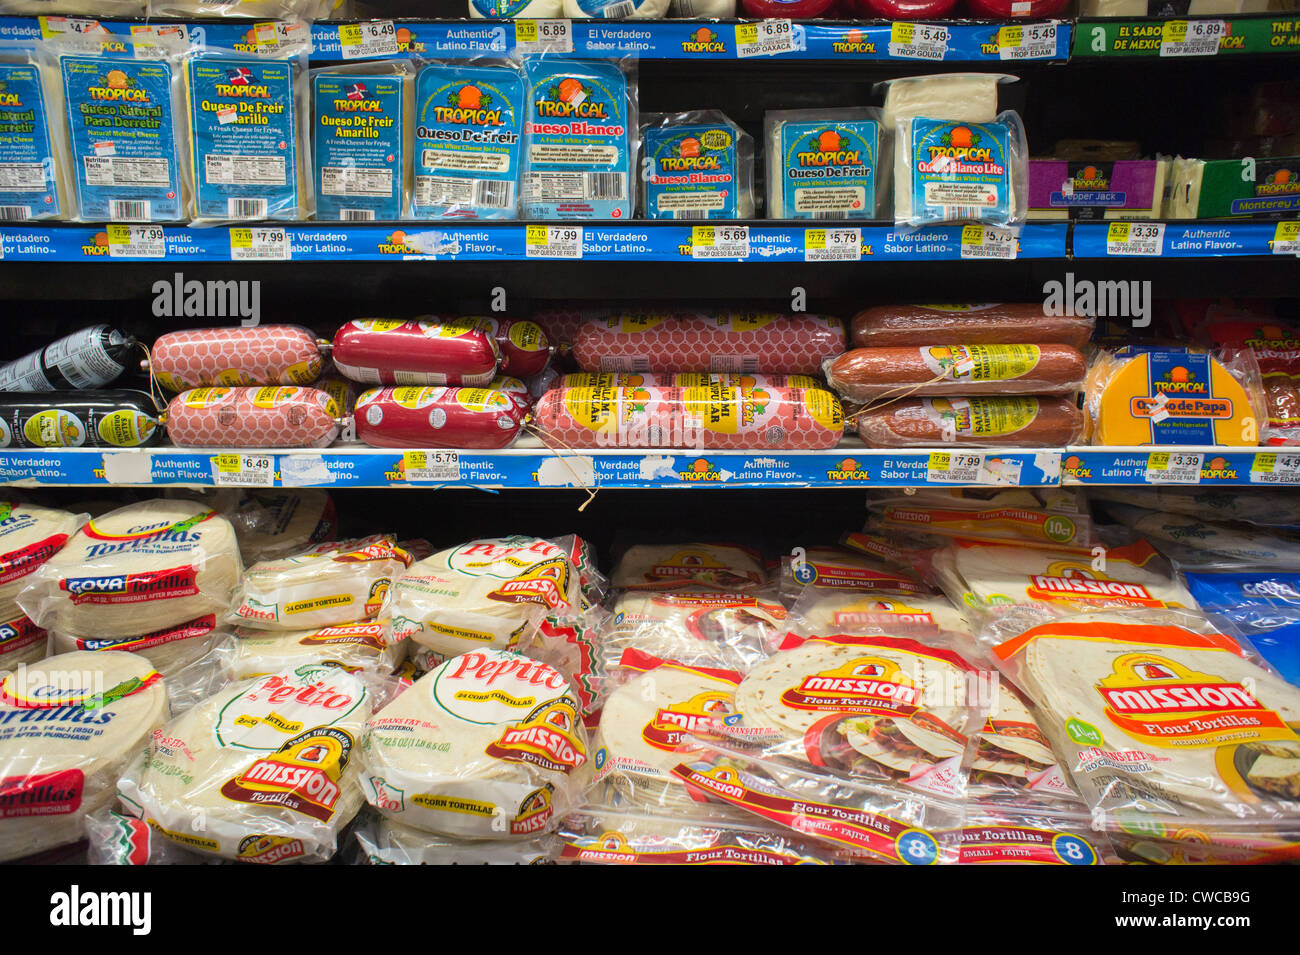 Whole Sale Groceries For Food Business In New York